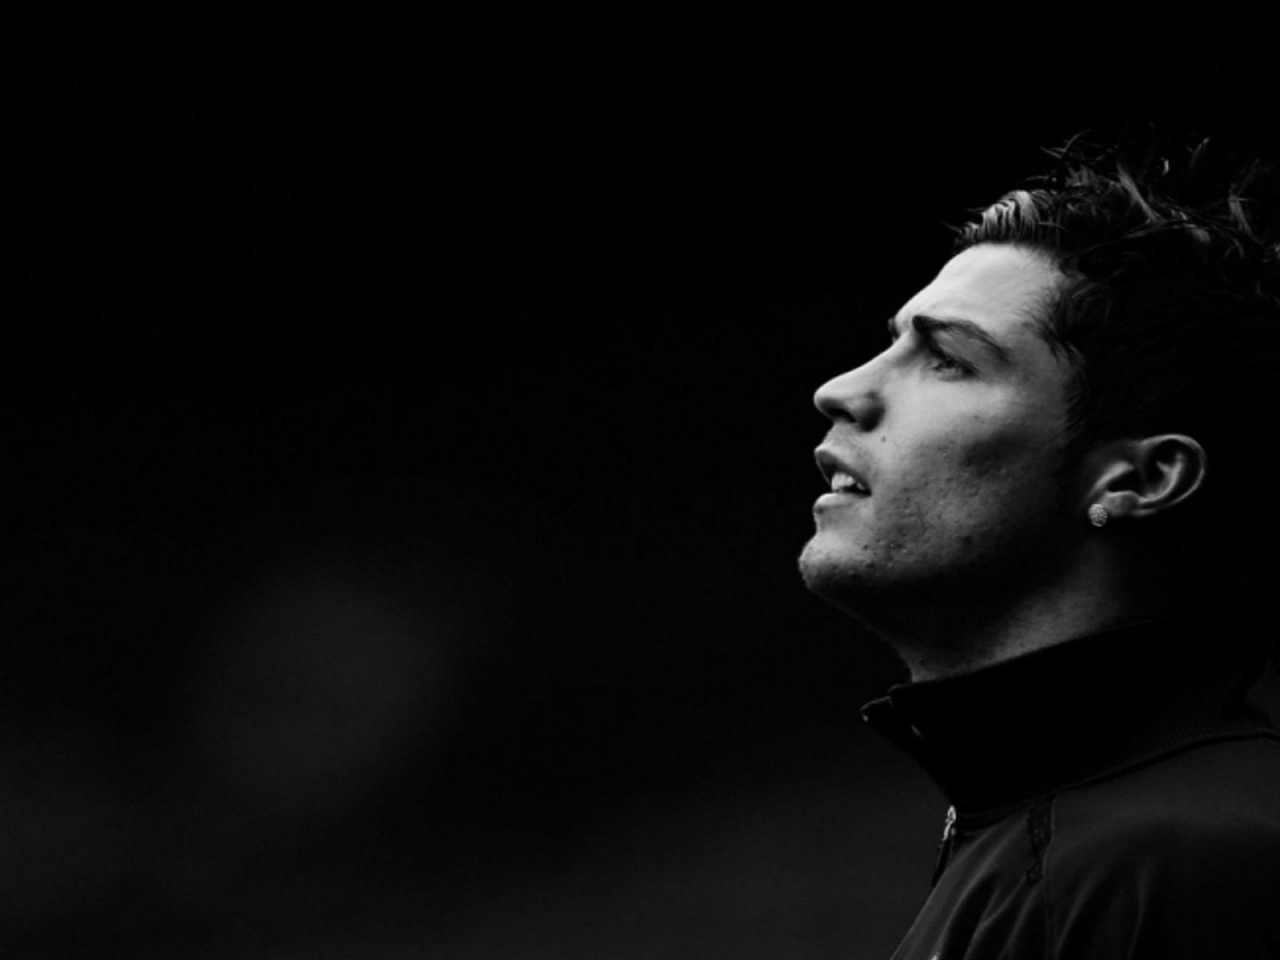 Cristiano Ronaldo Black and White for 1280 x 960 resolution